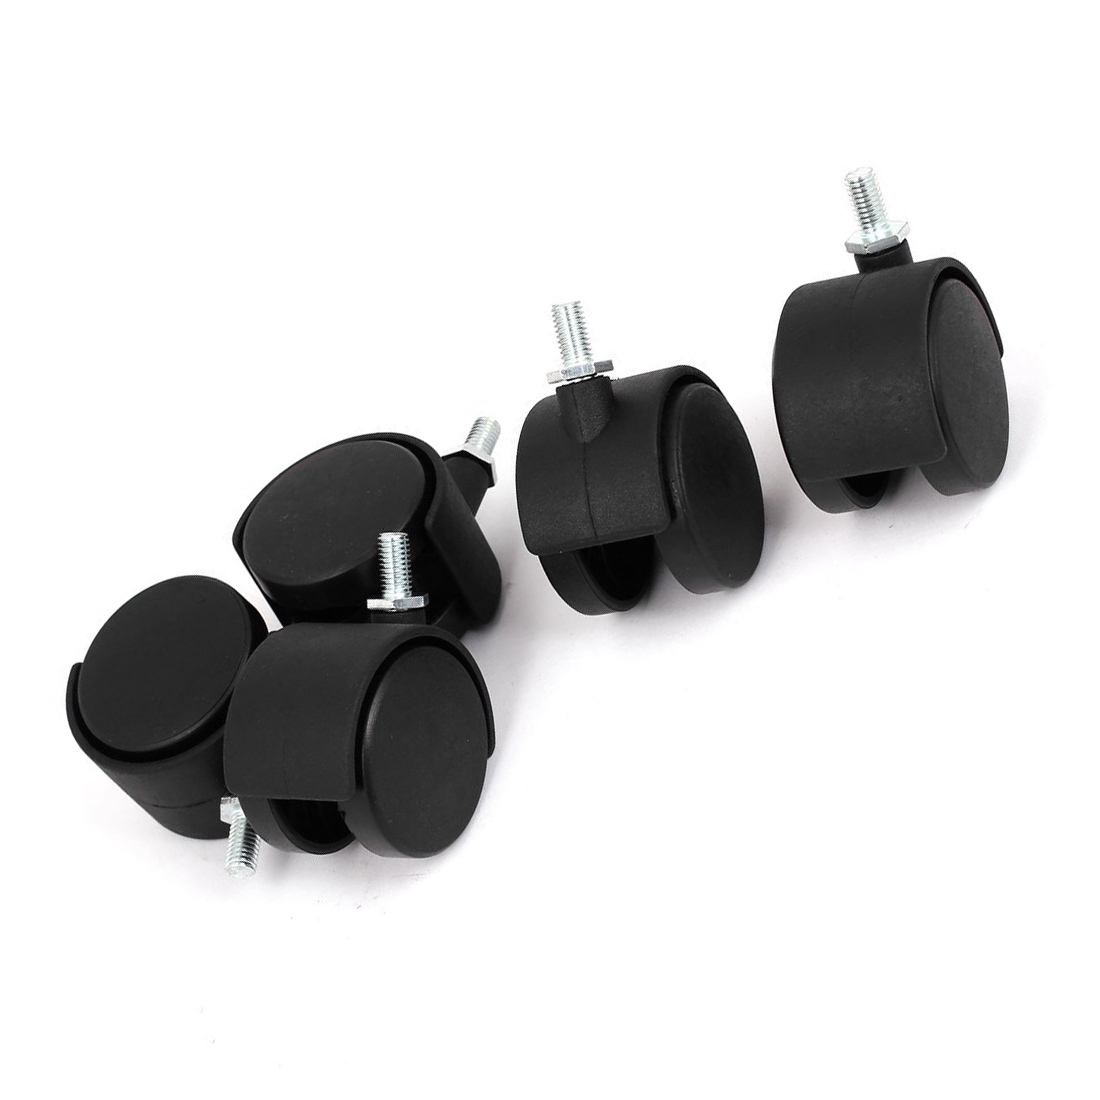 Promotion! 10mm Threaded Stem 2 Inch Dia Wheel Chair Swivel Caster 5 Pcs Black fslh 10mm threaded stem 2 inch dia wheel chair swivel caster 5 pcs black